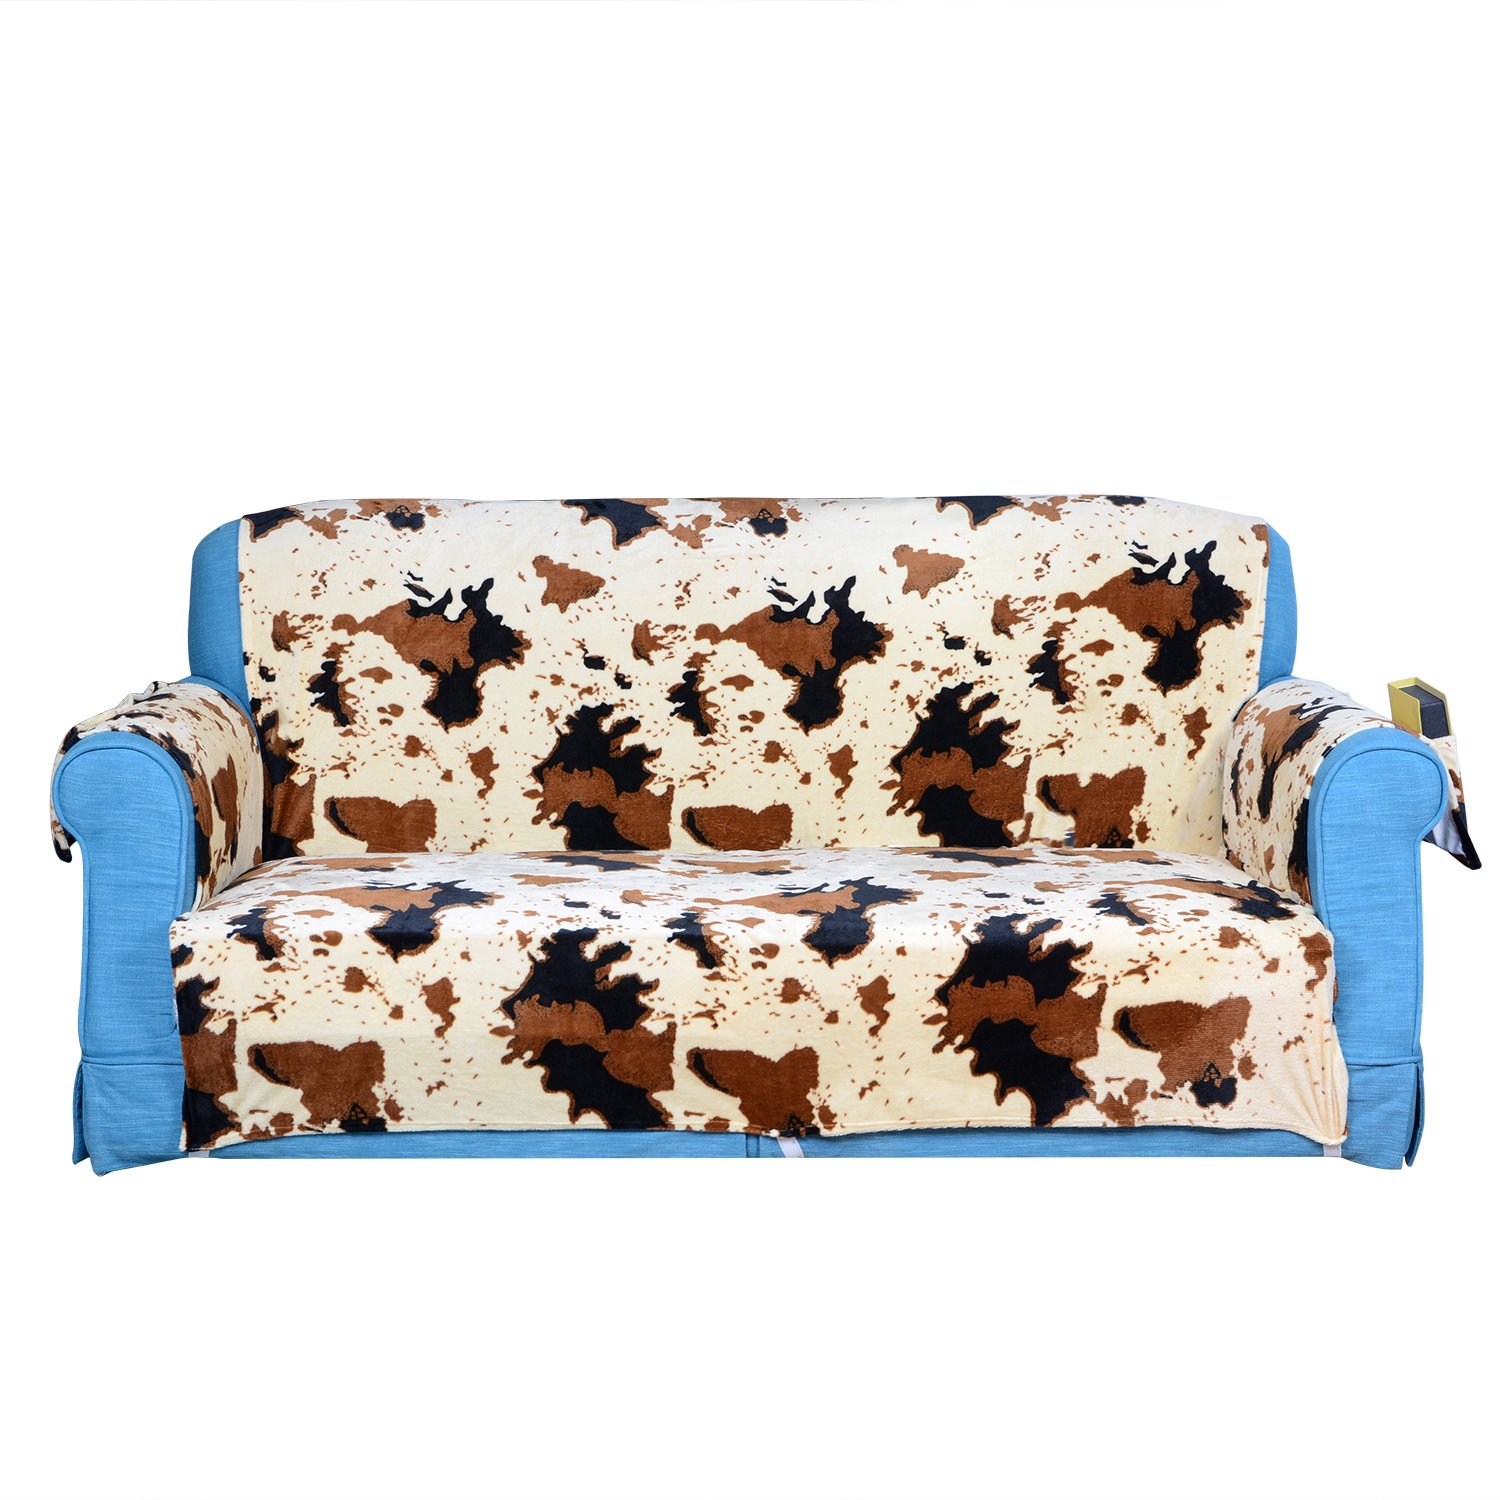 Yemyhom Real Non Slip Pet Dog Sofa Covers Protectors Water